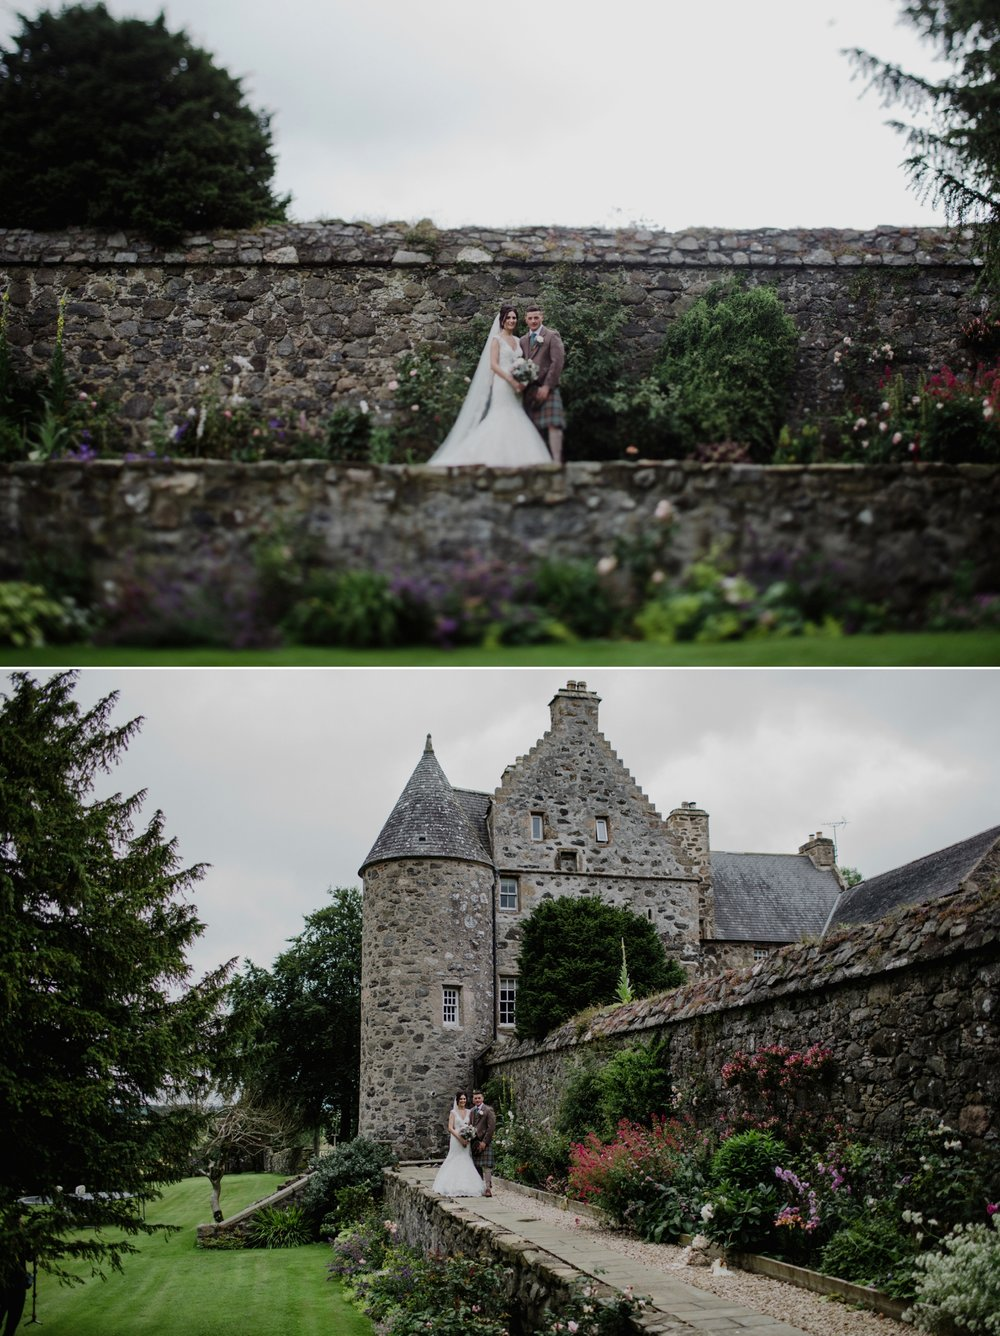 ELLIE_GARY_BARRA_CASTLE_WEDDING_ZOE_ALEXANDRA_PHOTOGRAPHY-0387.jpg